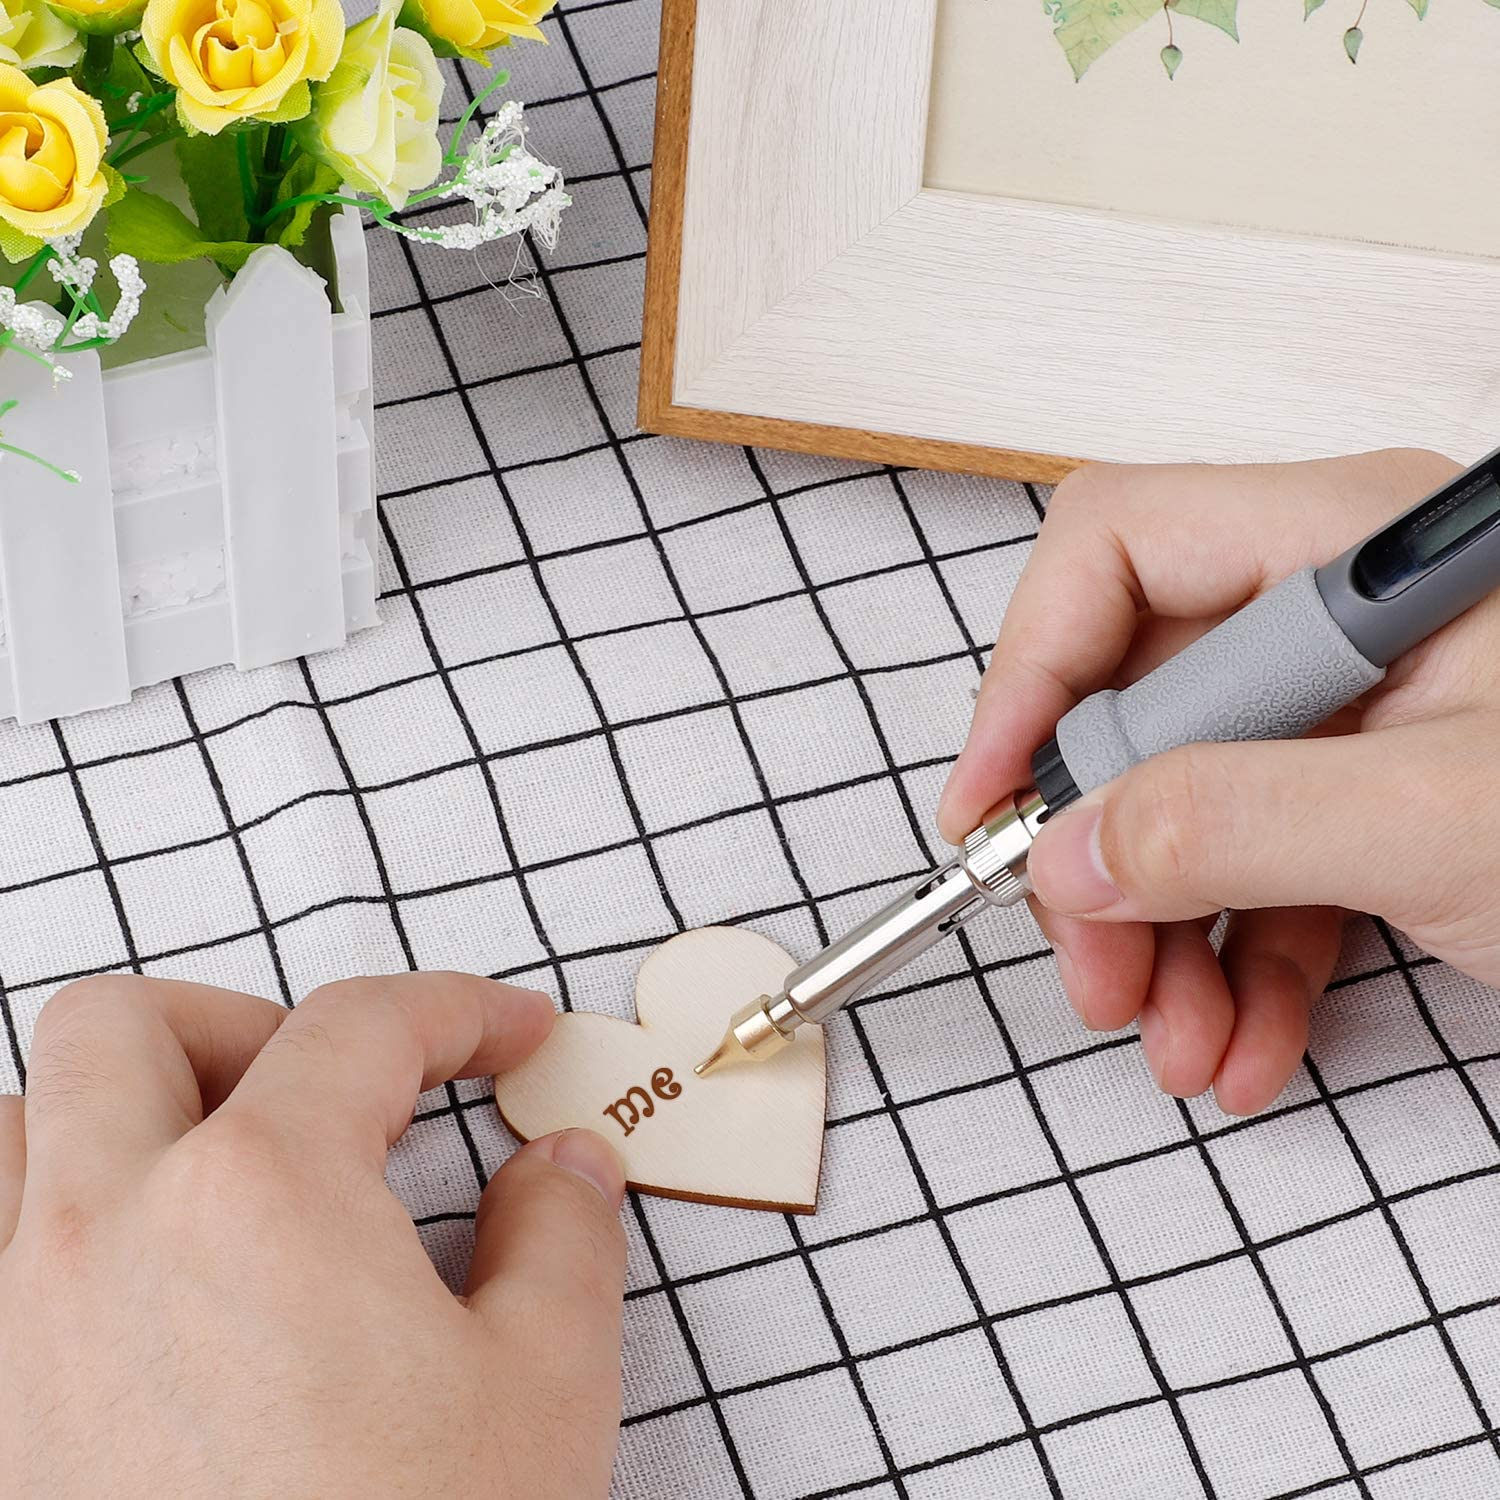 Develoo 28PCS Wood Burning Pen Tips Carving Iron Tip with 10PCS Unfinished Wooden Slices for Painting DIY Crafts Wood Carving and Embossing Wood Craft Tool for Adult Beginner